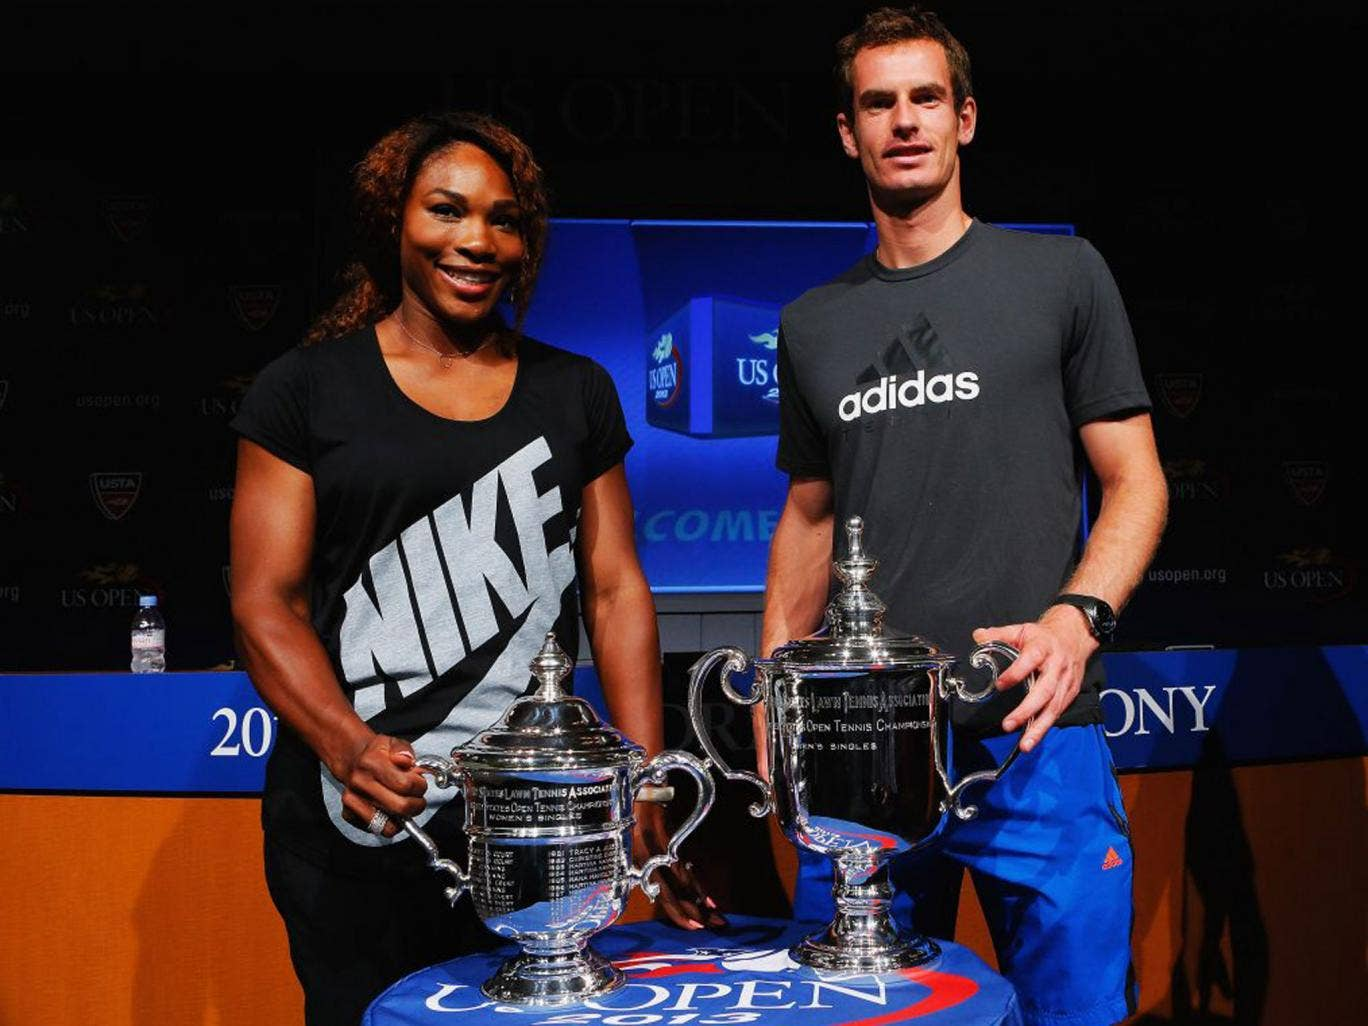 Defending champions Serena Williams and Andy Murray pose ahead of next week's US Open